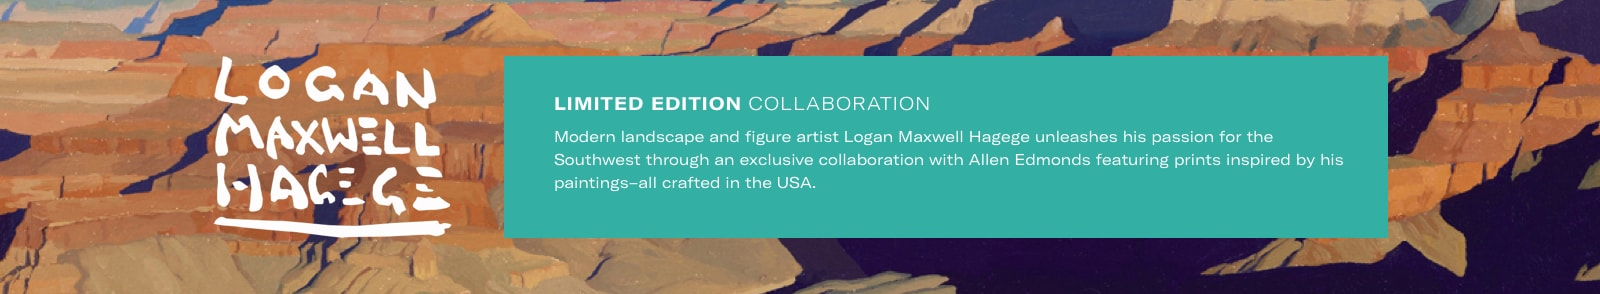 Limited edition collaboration with Logan Maxwell Hagege. Focusing on contemporary Native Americans living in the Southwest, modern landscapes, bucking broncos, and other American relics. Hagege credits childhood trips to the California desert to visit his grandmother as early inspirations for his art.